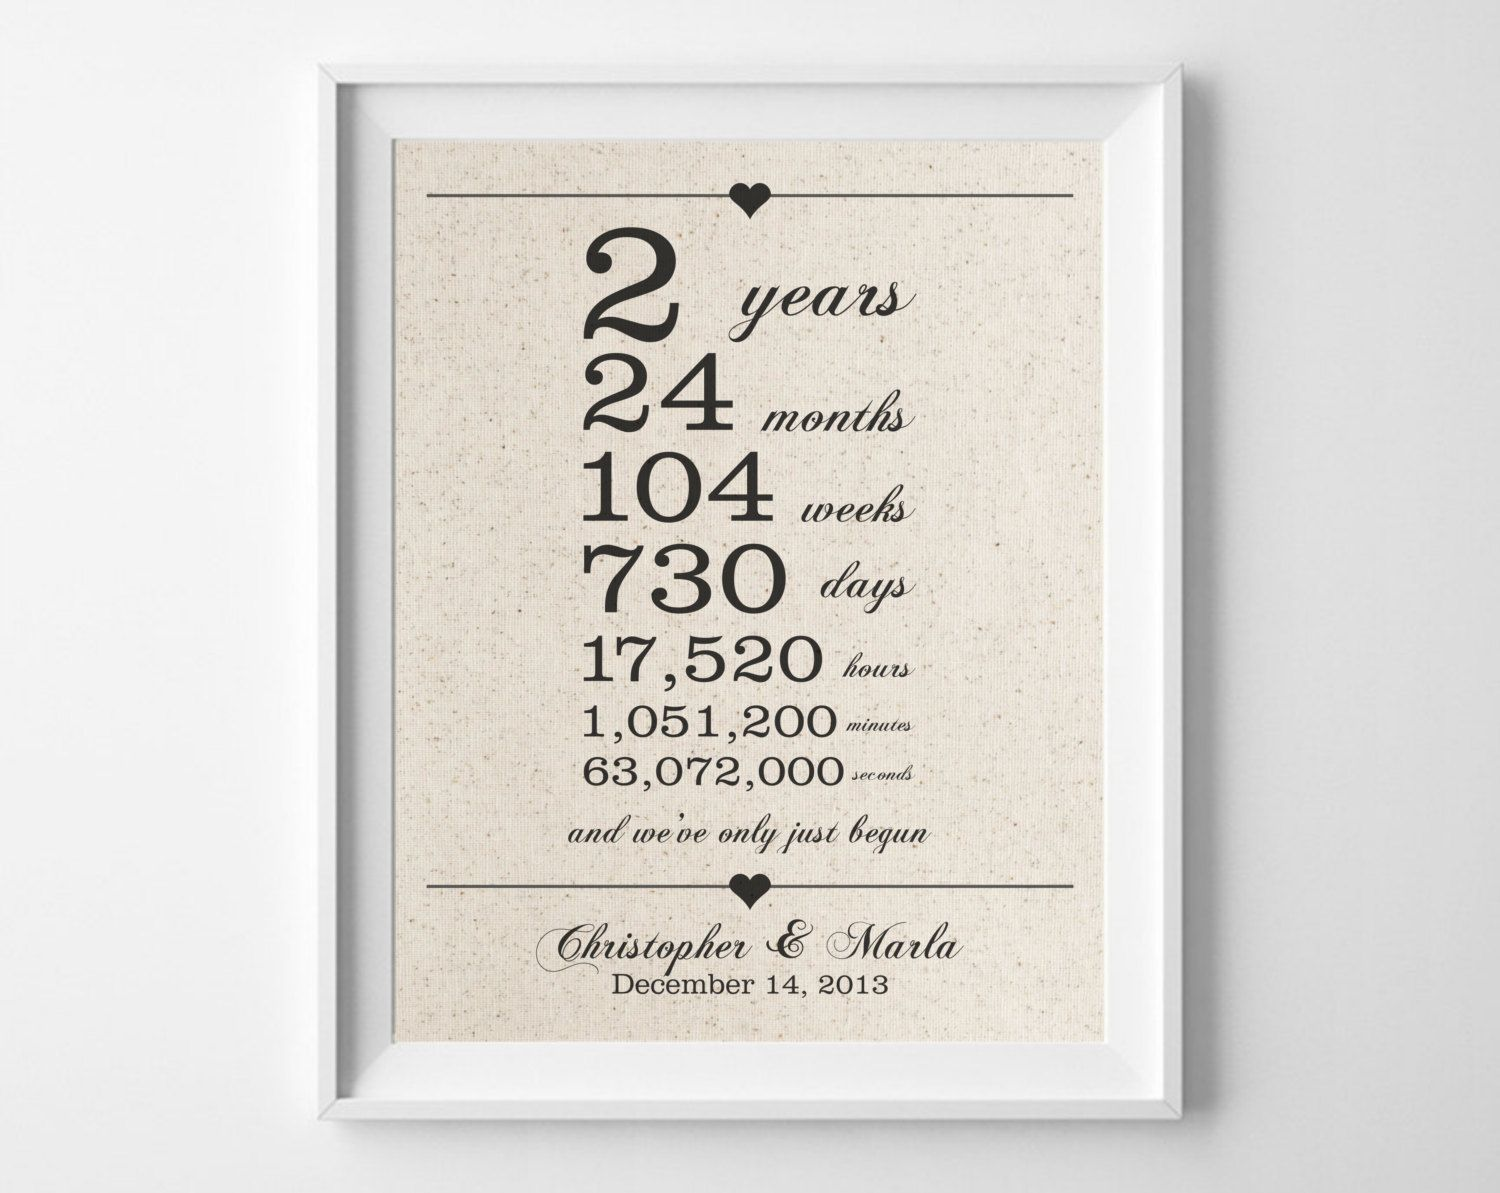 2 Years Together Cotton Anniversary Print 2nd Anniversary Days Hours Minut 2nd Wedding Anniversary 2nd Wedding Anniversary Gift Anniversary Ideas For Him